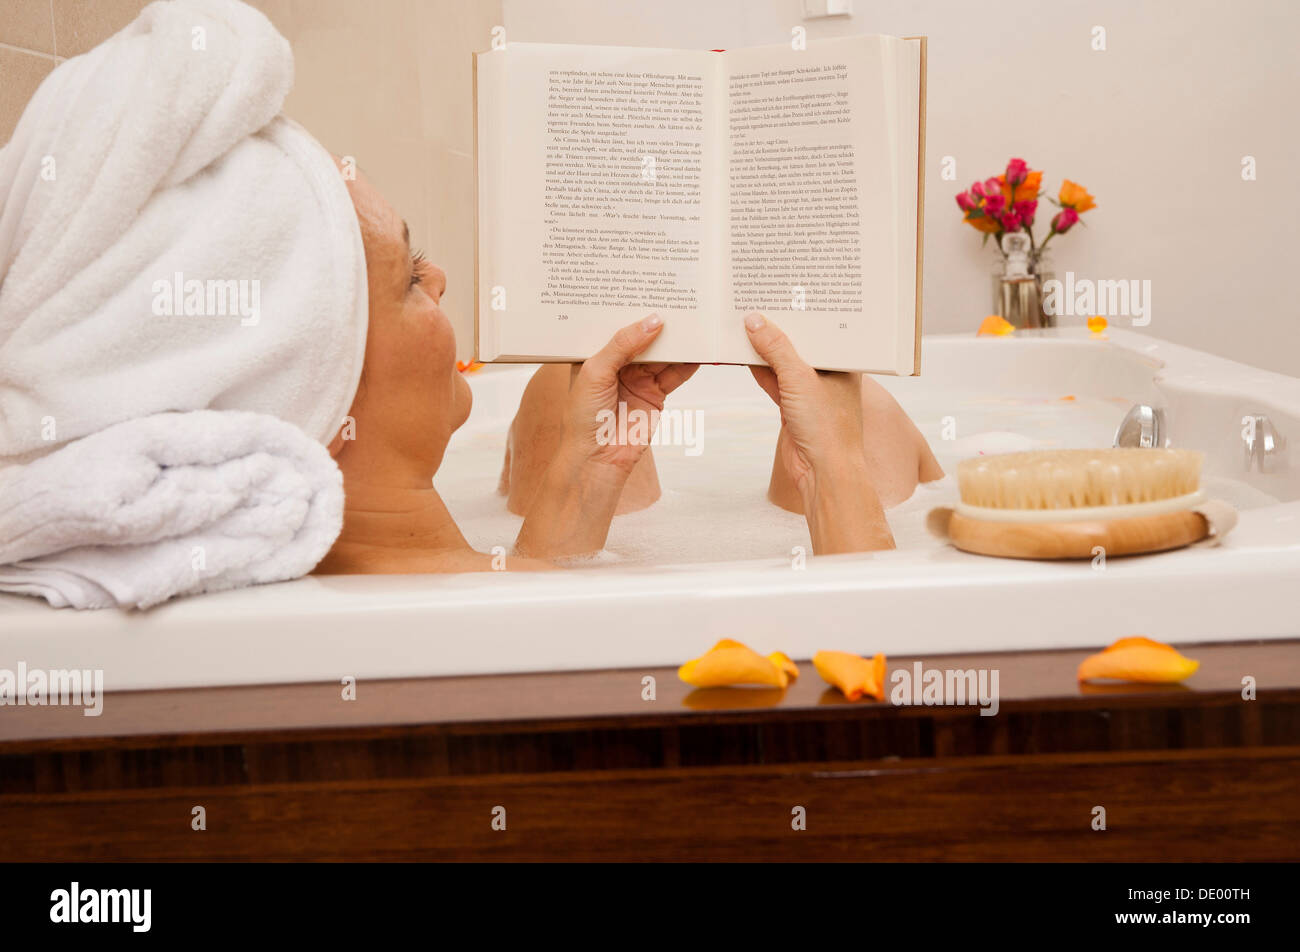 Woman taking a bath and reading a book Stock Photo: 60236977 - Alamy